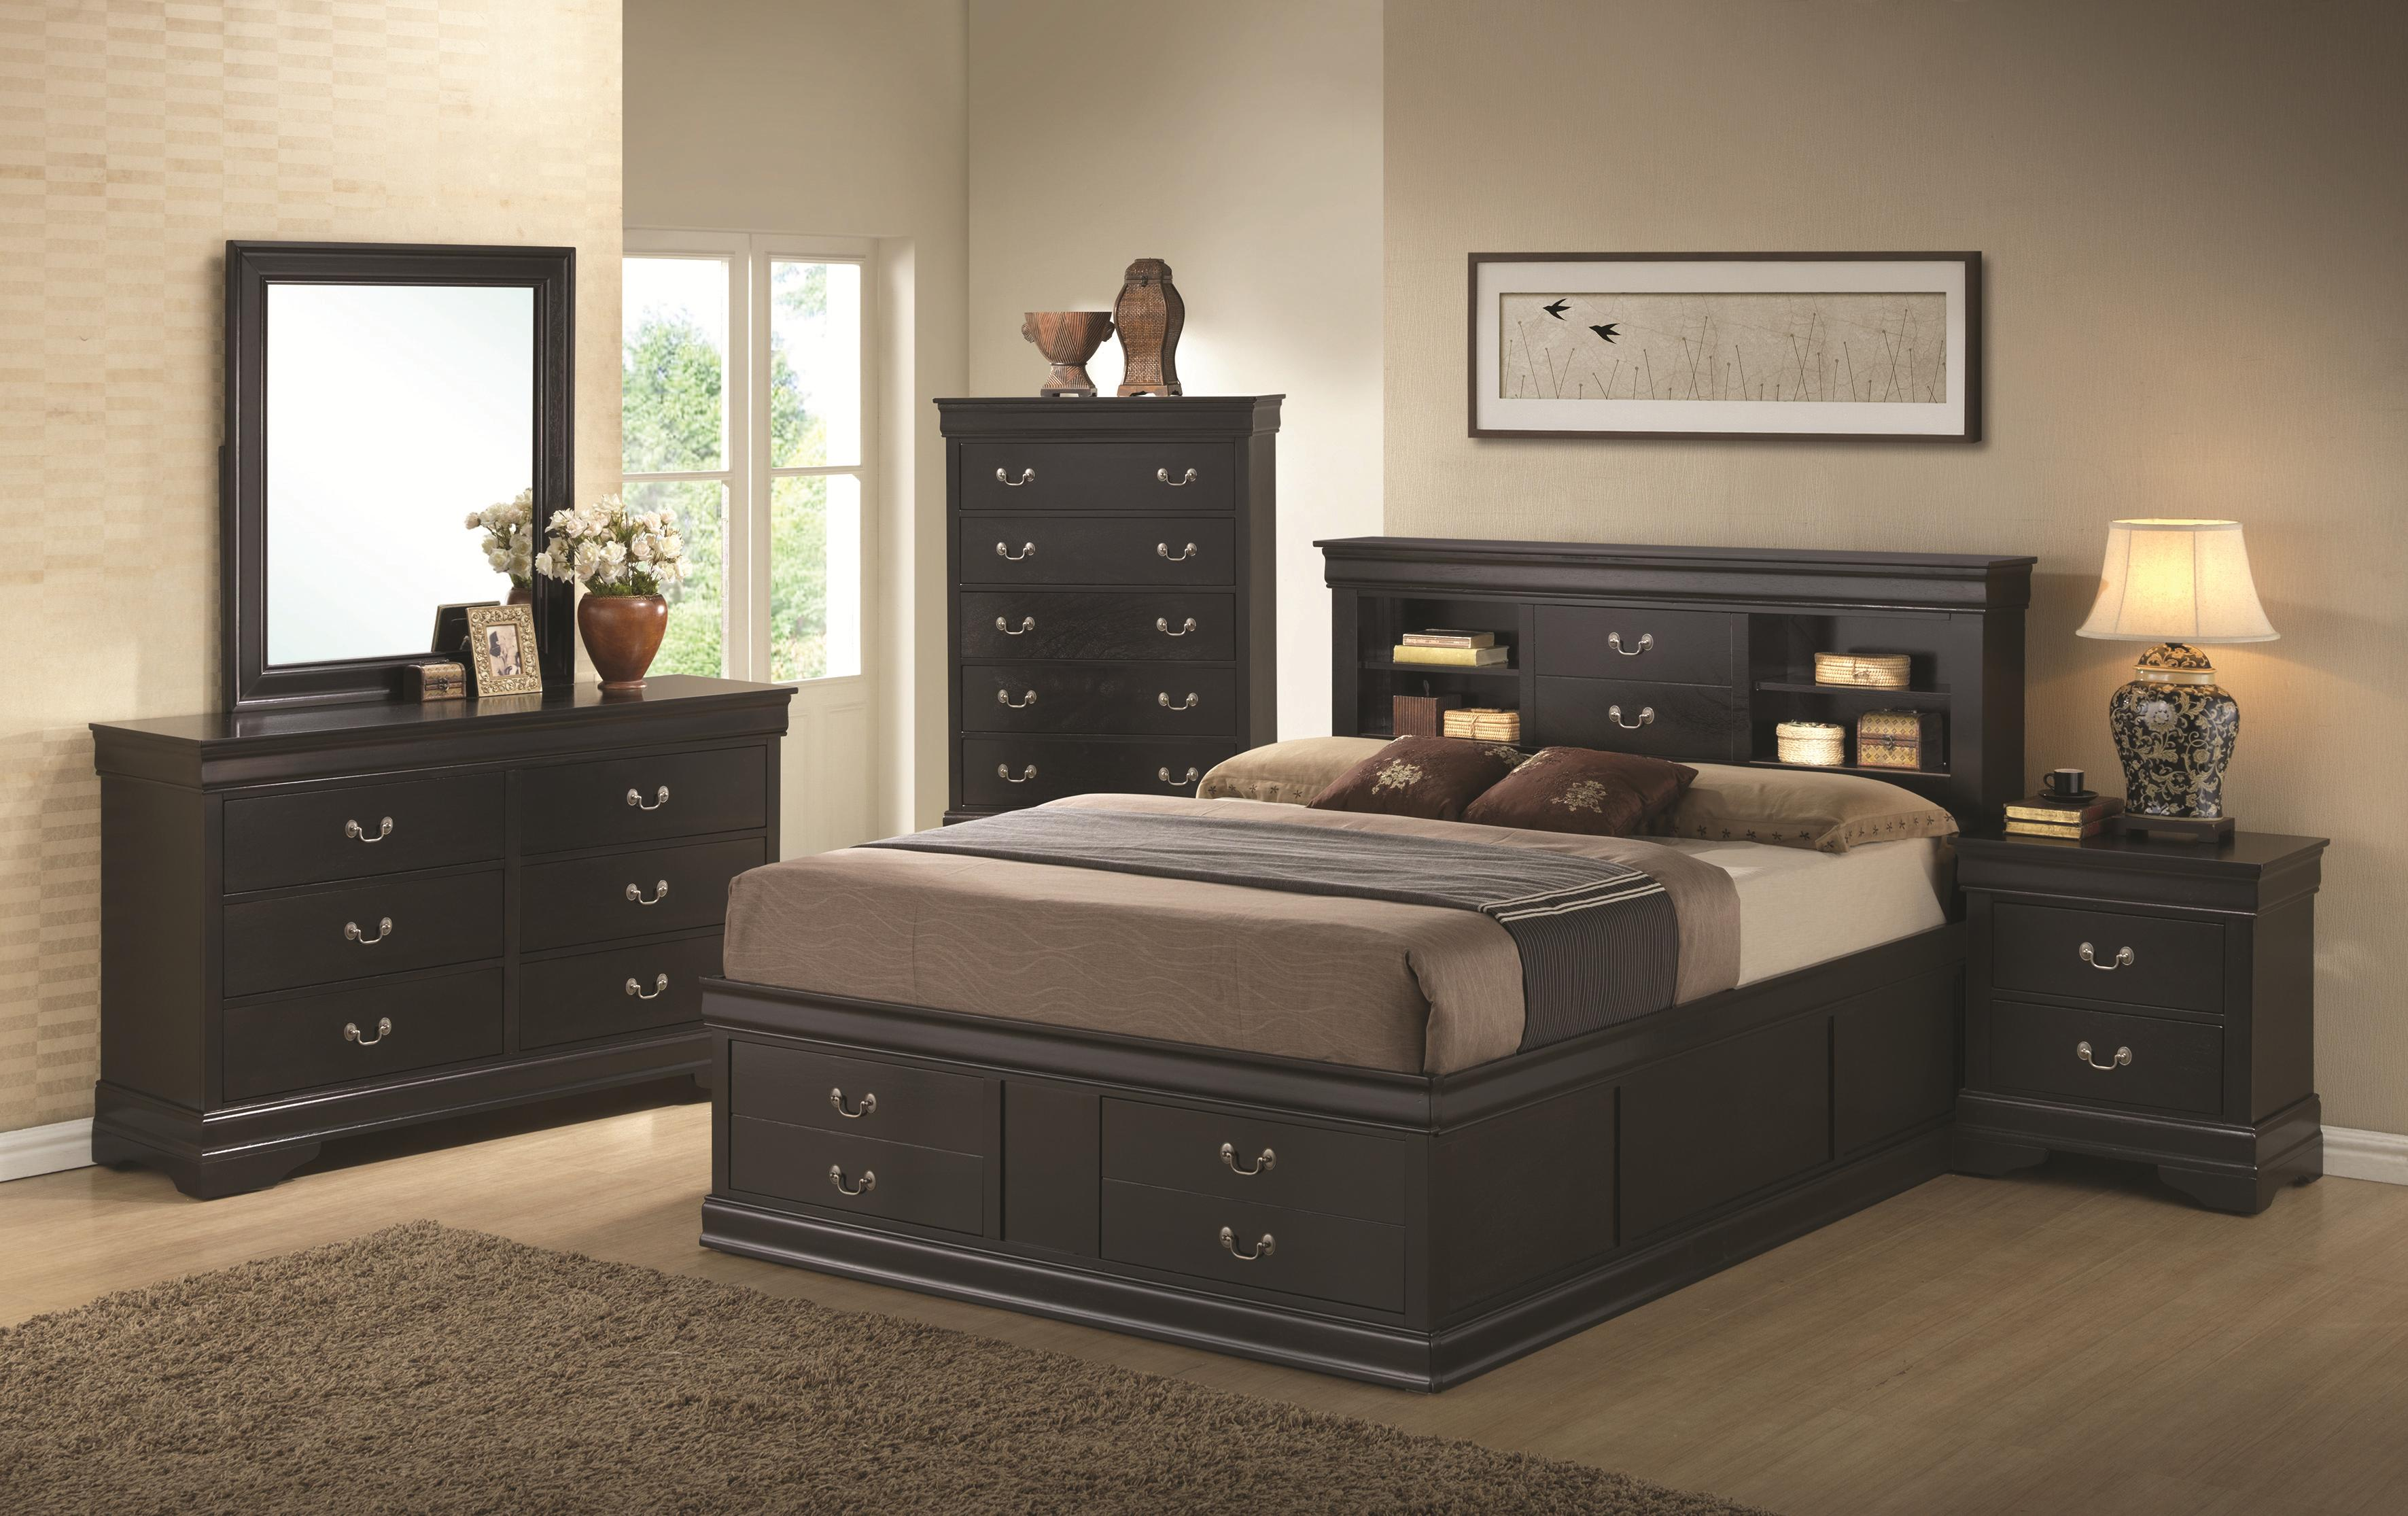 Coaster Louis Philippe Queen Bedroom Group - Item Number: 203960B Q Bedroom Group 1